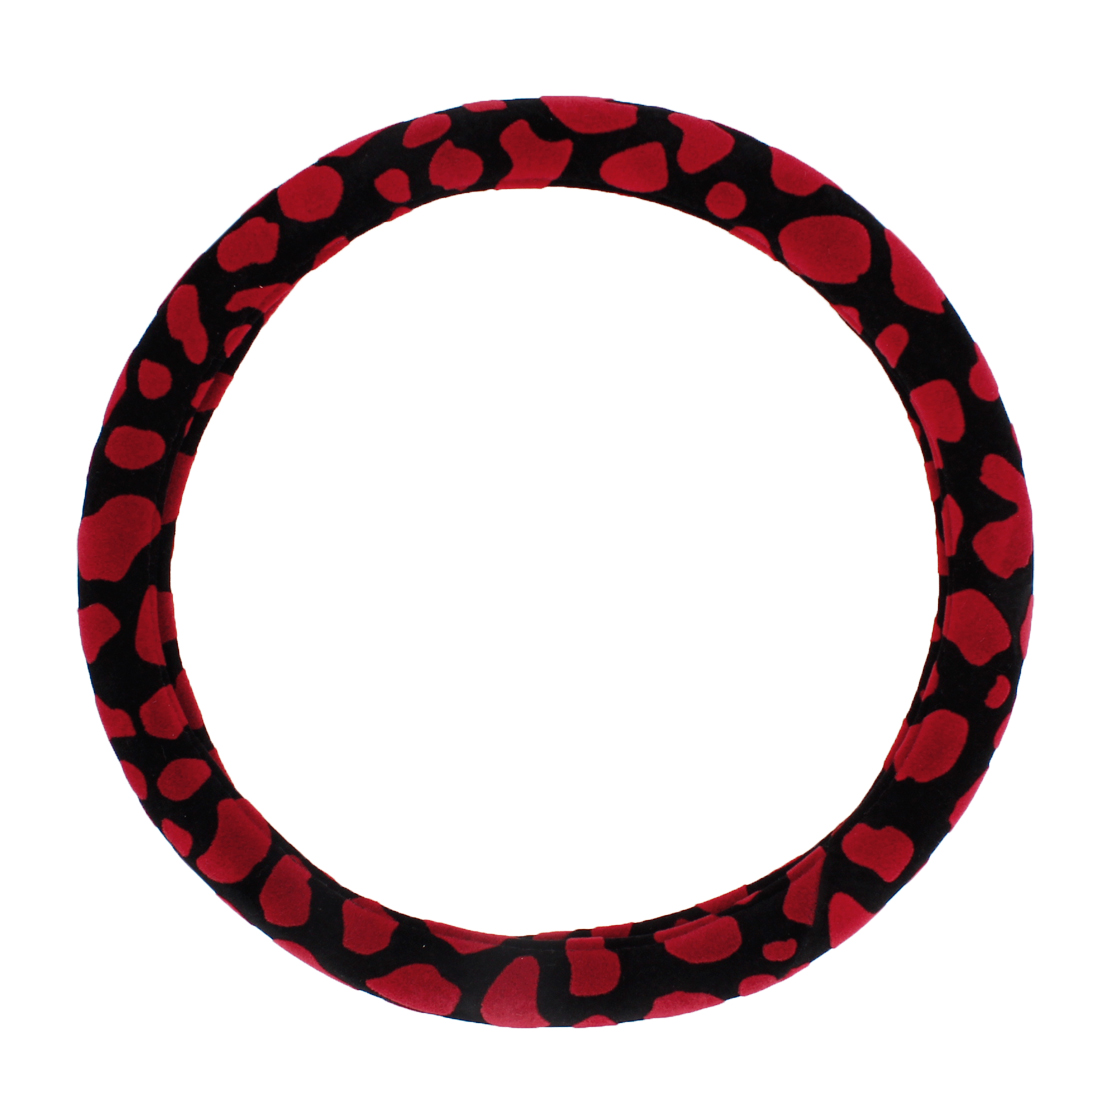 "38cm 15"" Dia Black Red Velvet Coated Steering Wheel Cover Protector for Car"